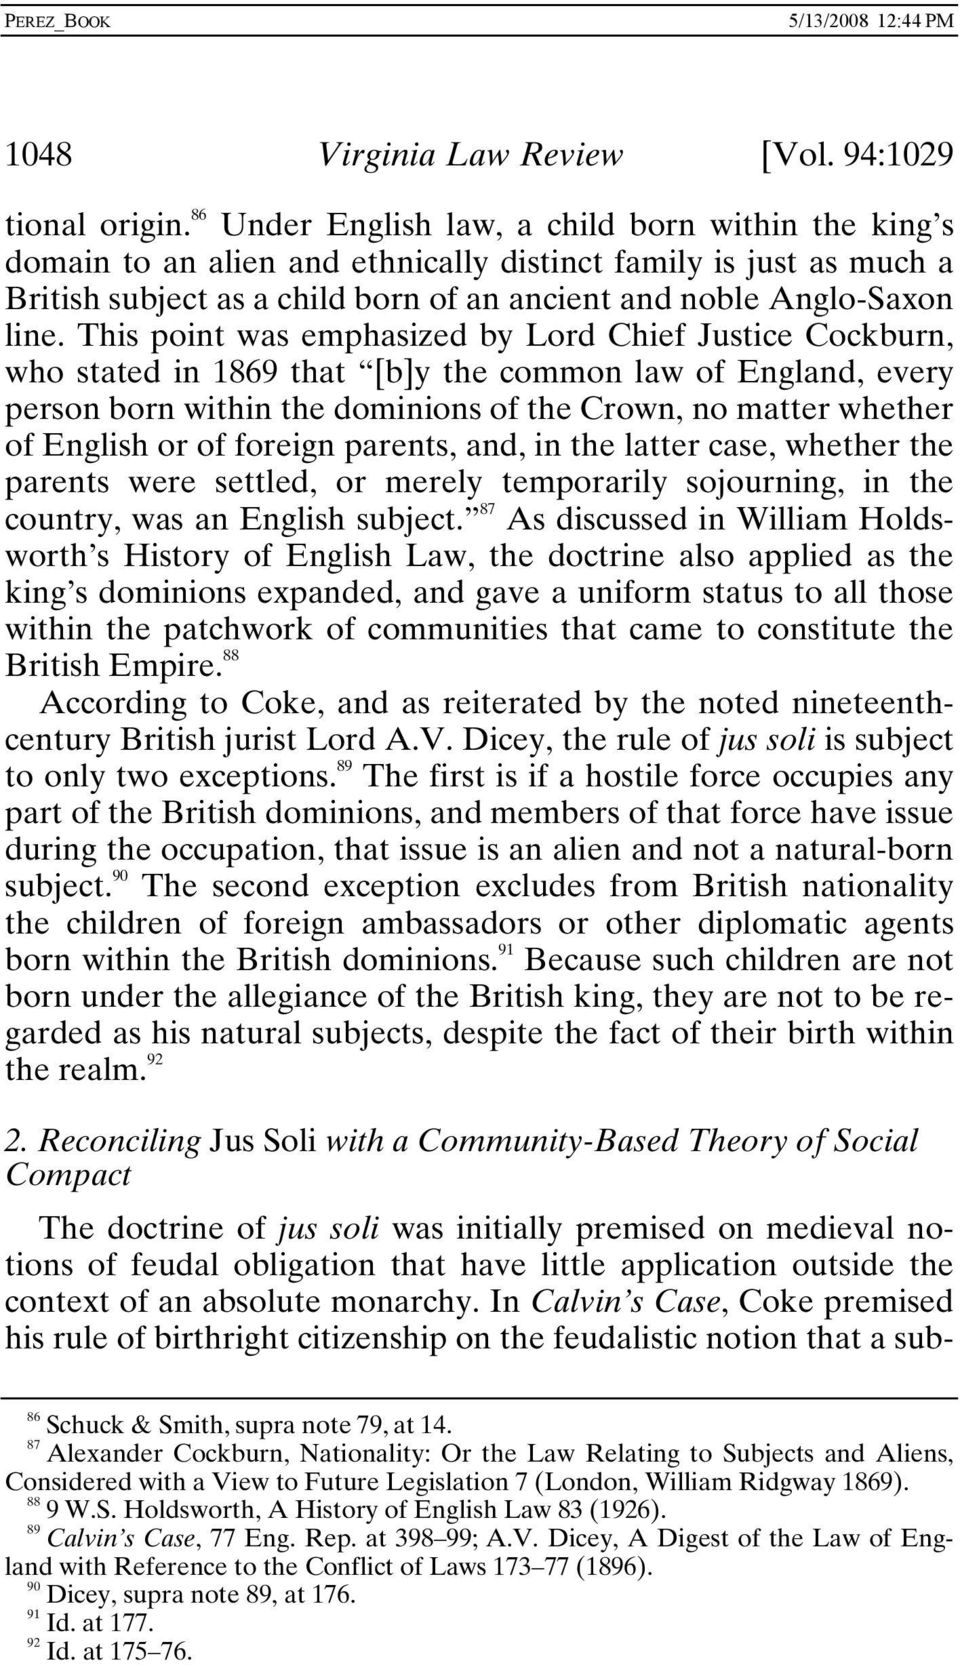 This point was emphasized by Lord Chief Justice Cockburn, who stated in 1869 that [b]y the common law of England, every person born within the dominions of the Crown, no matter whether of English or